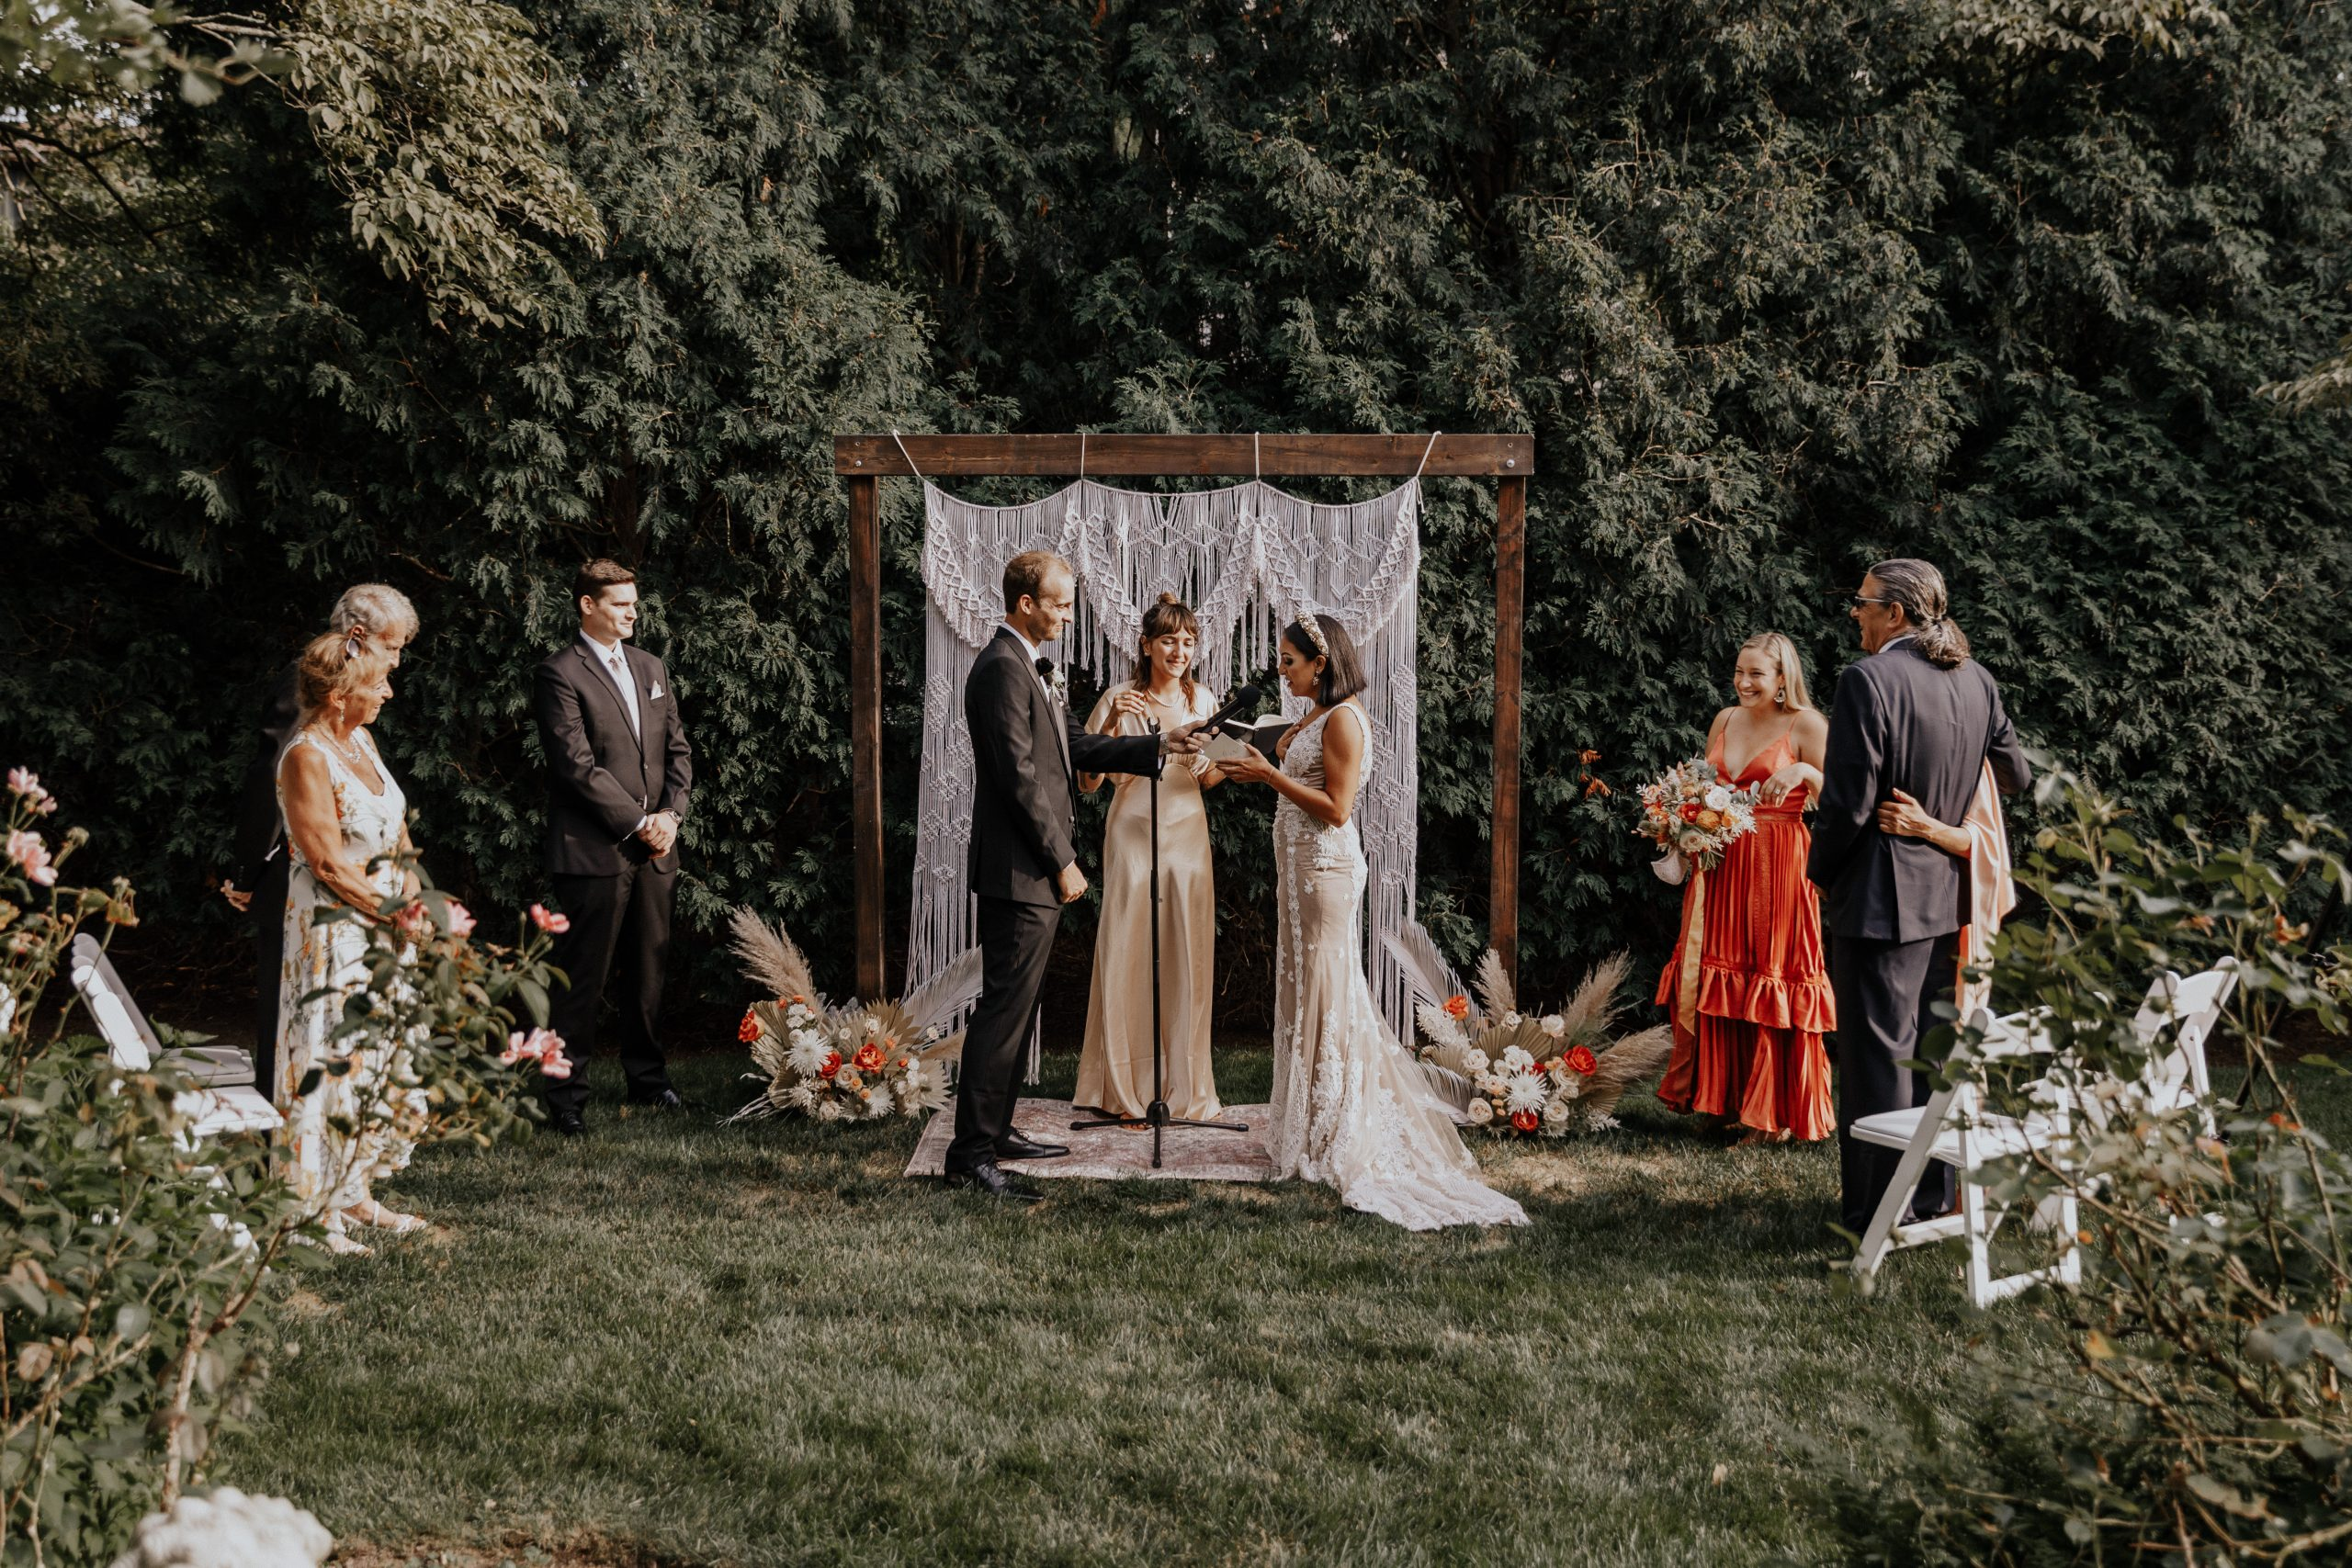 Groom with Real Bride During Backyard Elopement Ceremony with Immediate Family